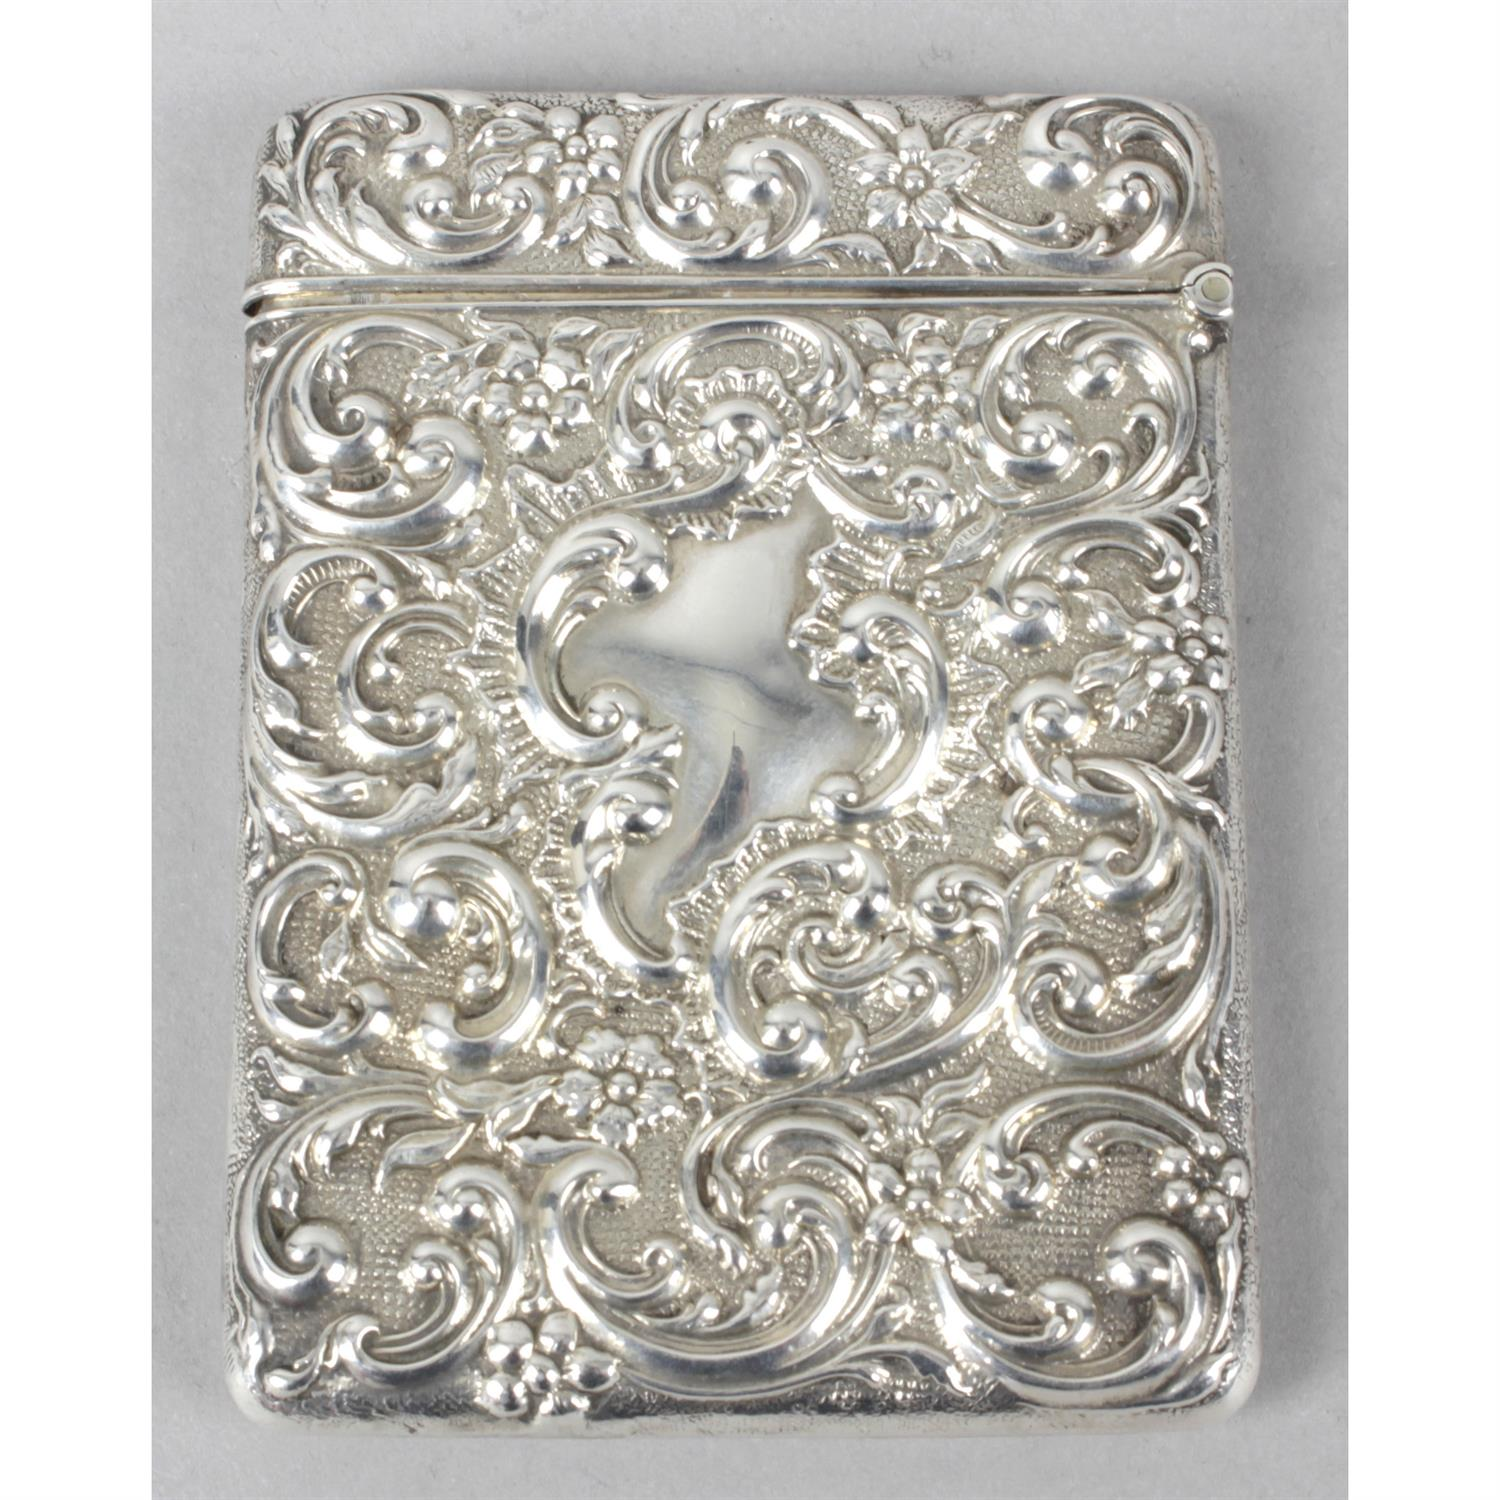 An Edwardian silver card case with repoussé decoration. - Image 2 of 3